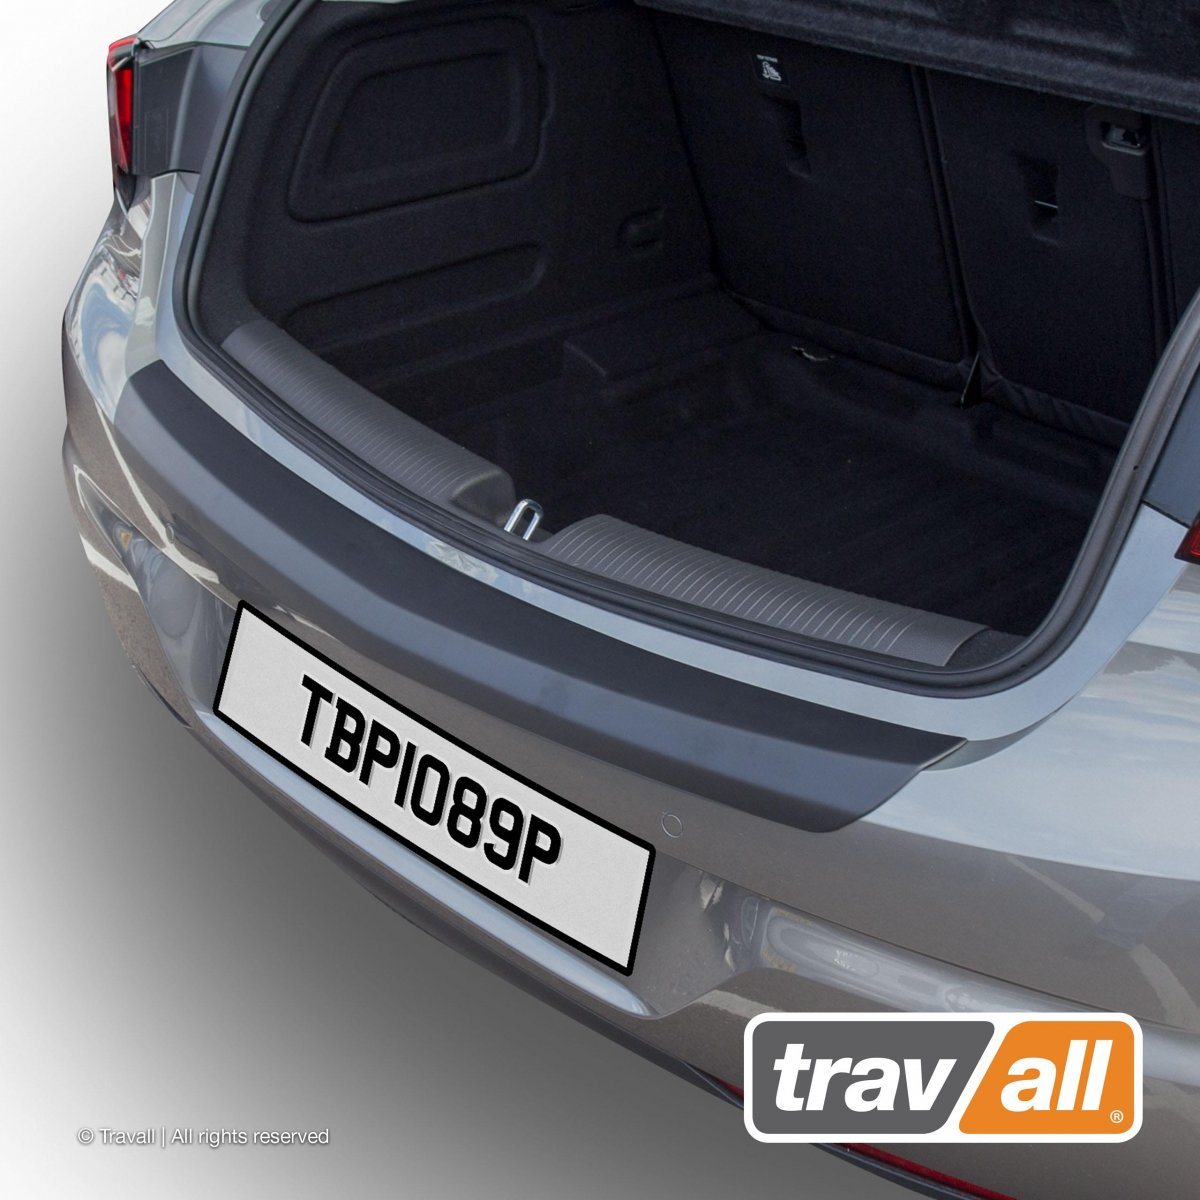 Travall® PROTECTOR-Plastique lisse pour Opel/Vauxhall Astra 5 Portes Hayon (2015 >)